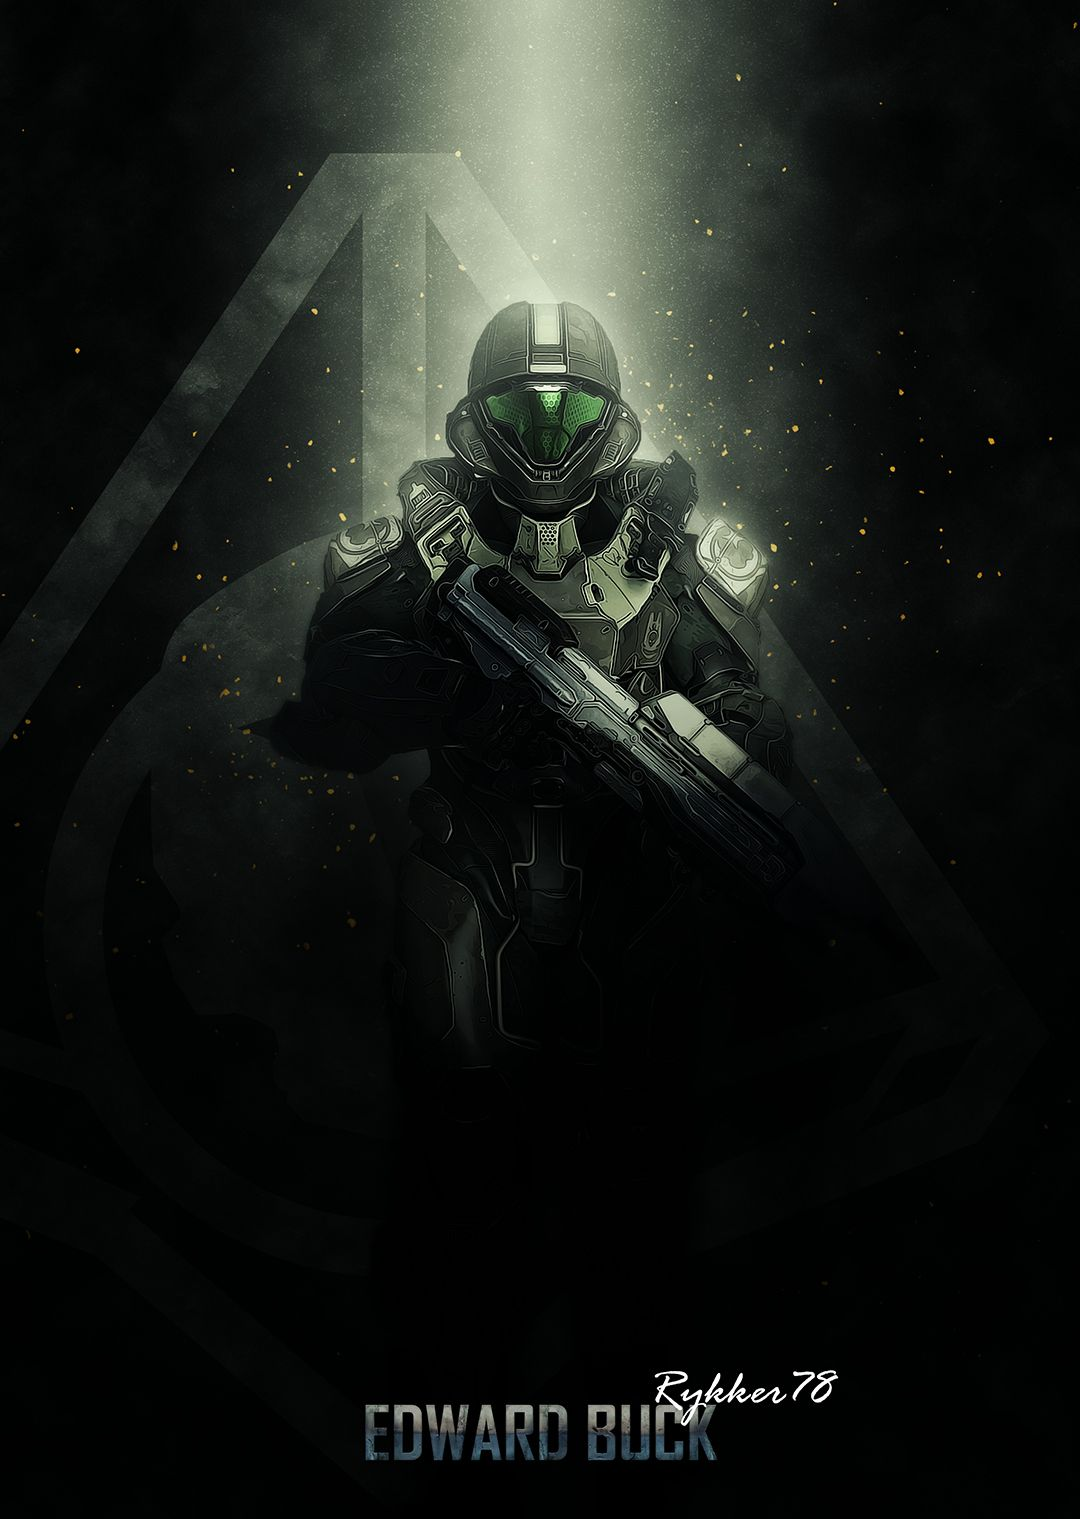 Buck From Halo Space Poster Print Metal Posters Halo Halo